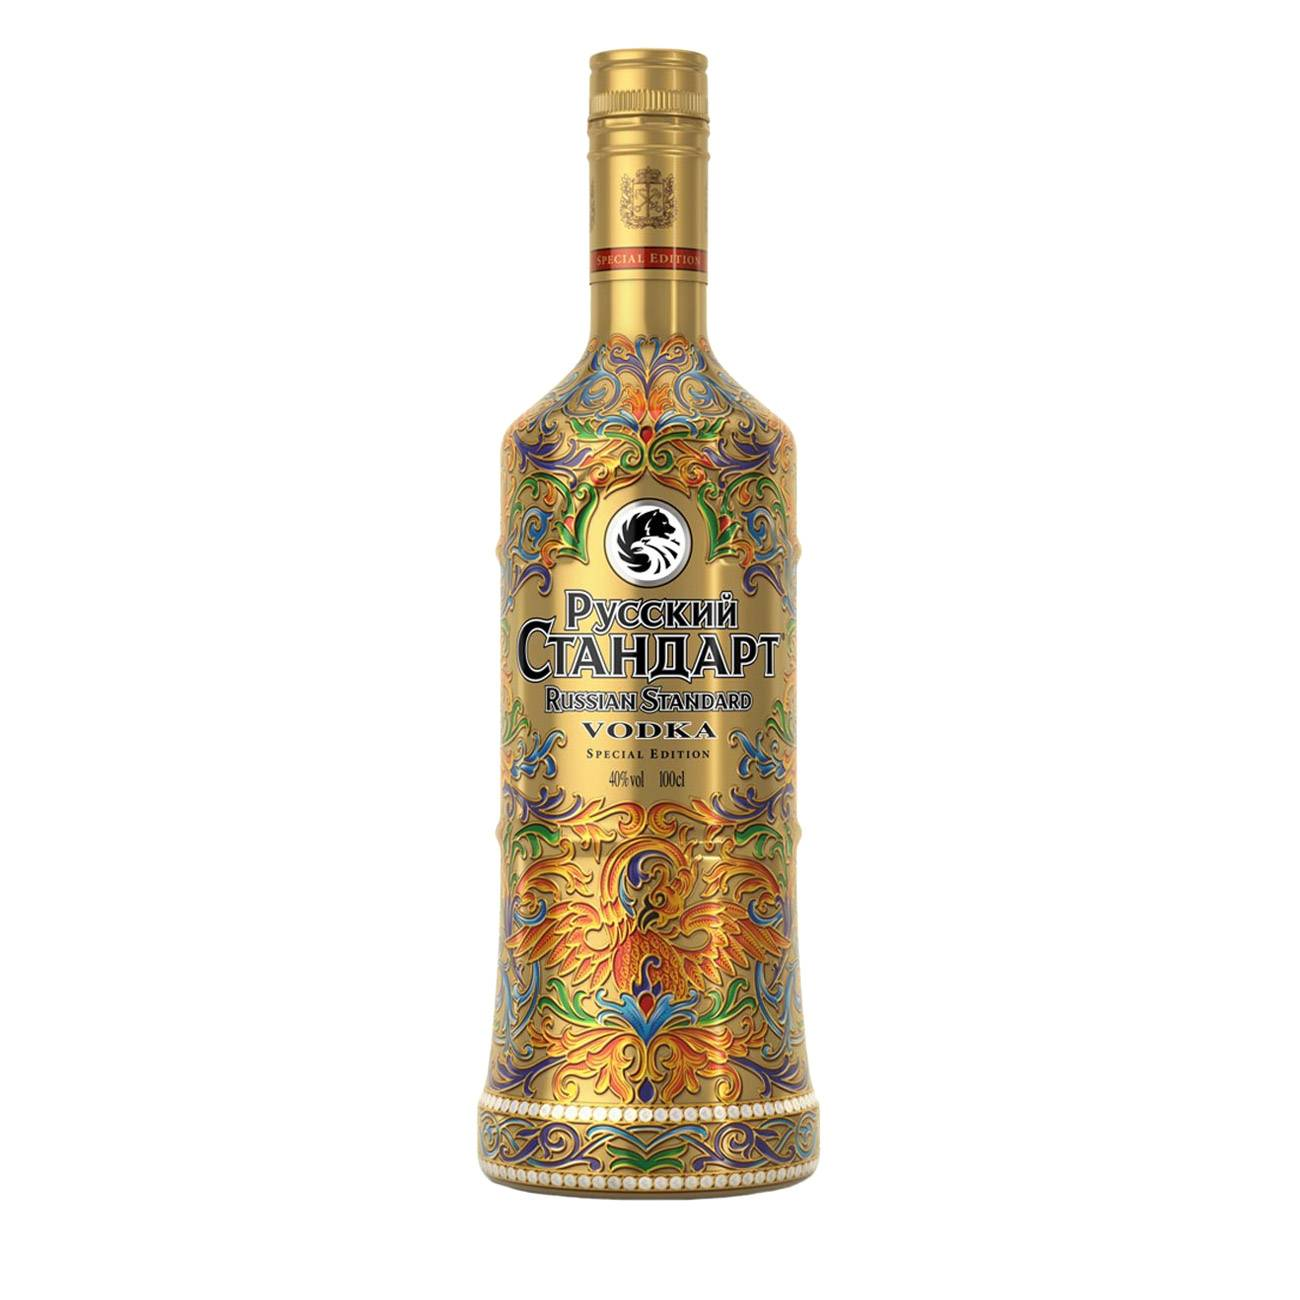 Vodka, ORIGINAL LYUBAVIN SPECIAL EDITION 1000ml, Russky Standard